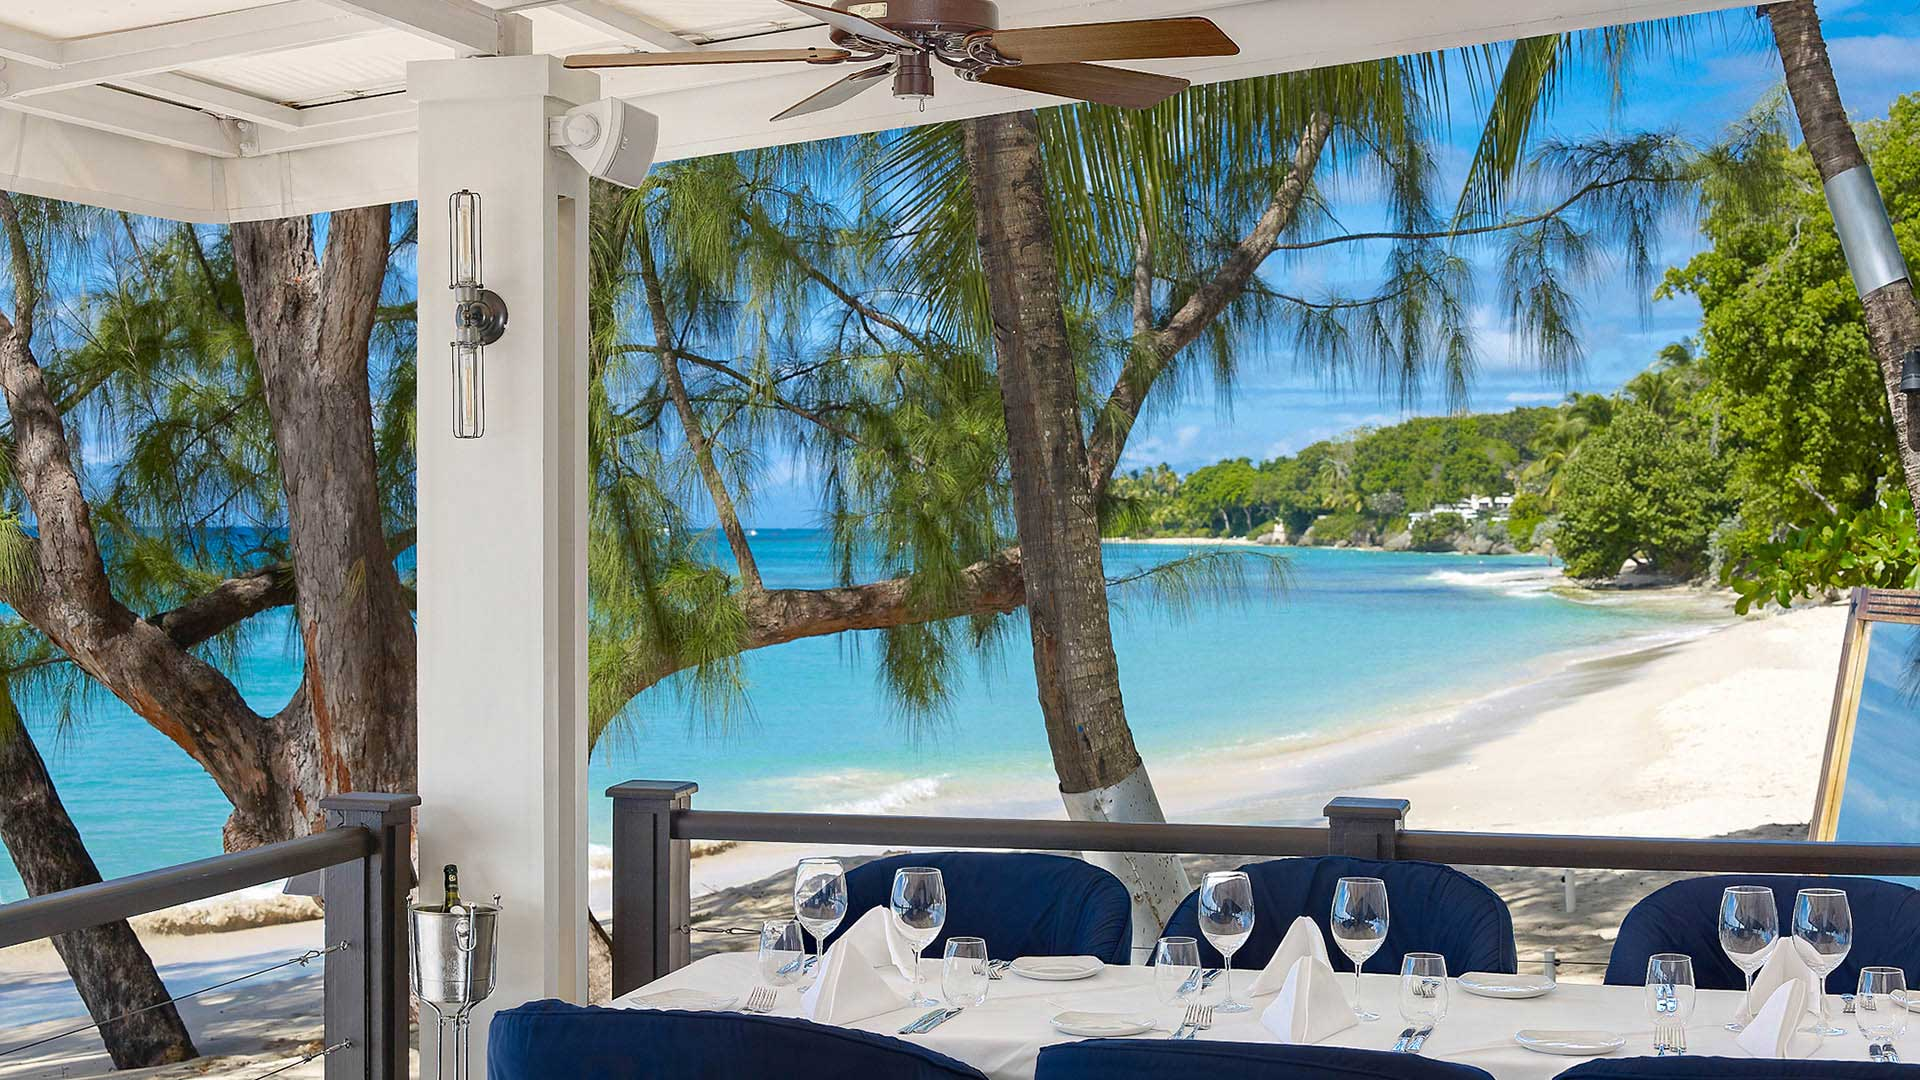 The Lone Star Hotel And Restaurant Barbados The Ultimate